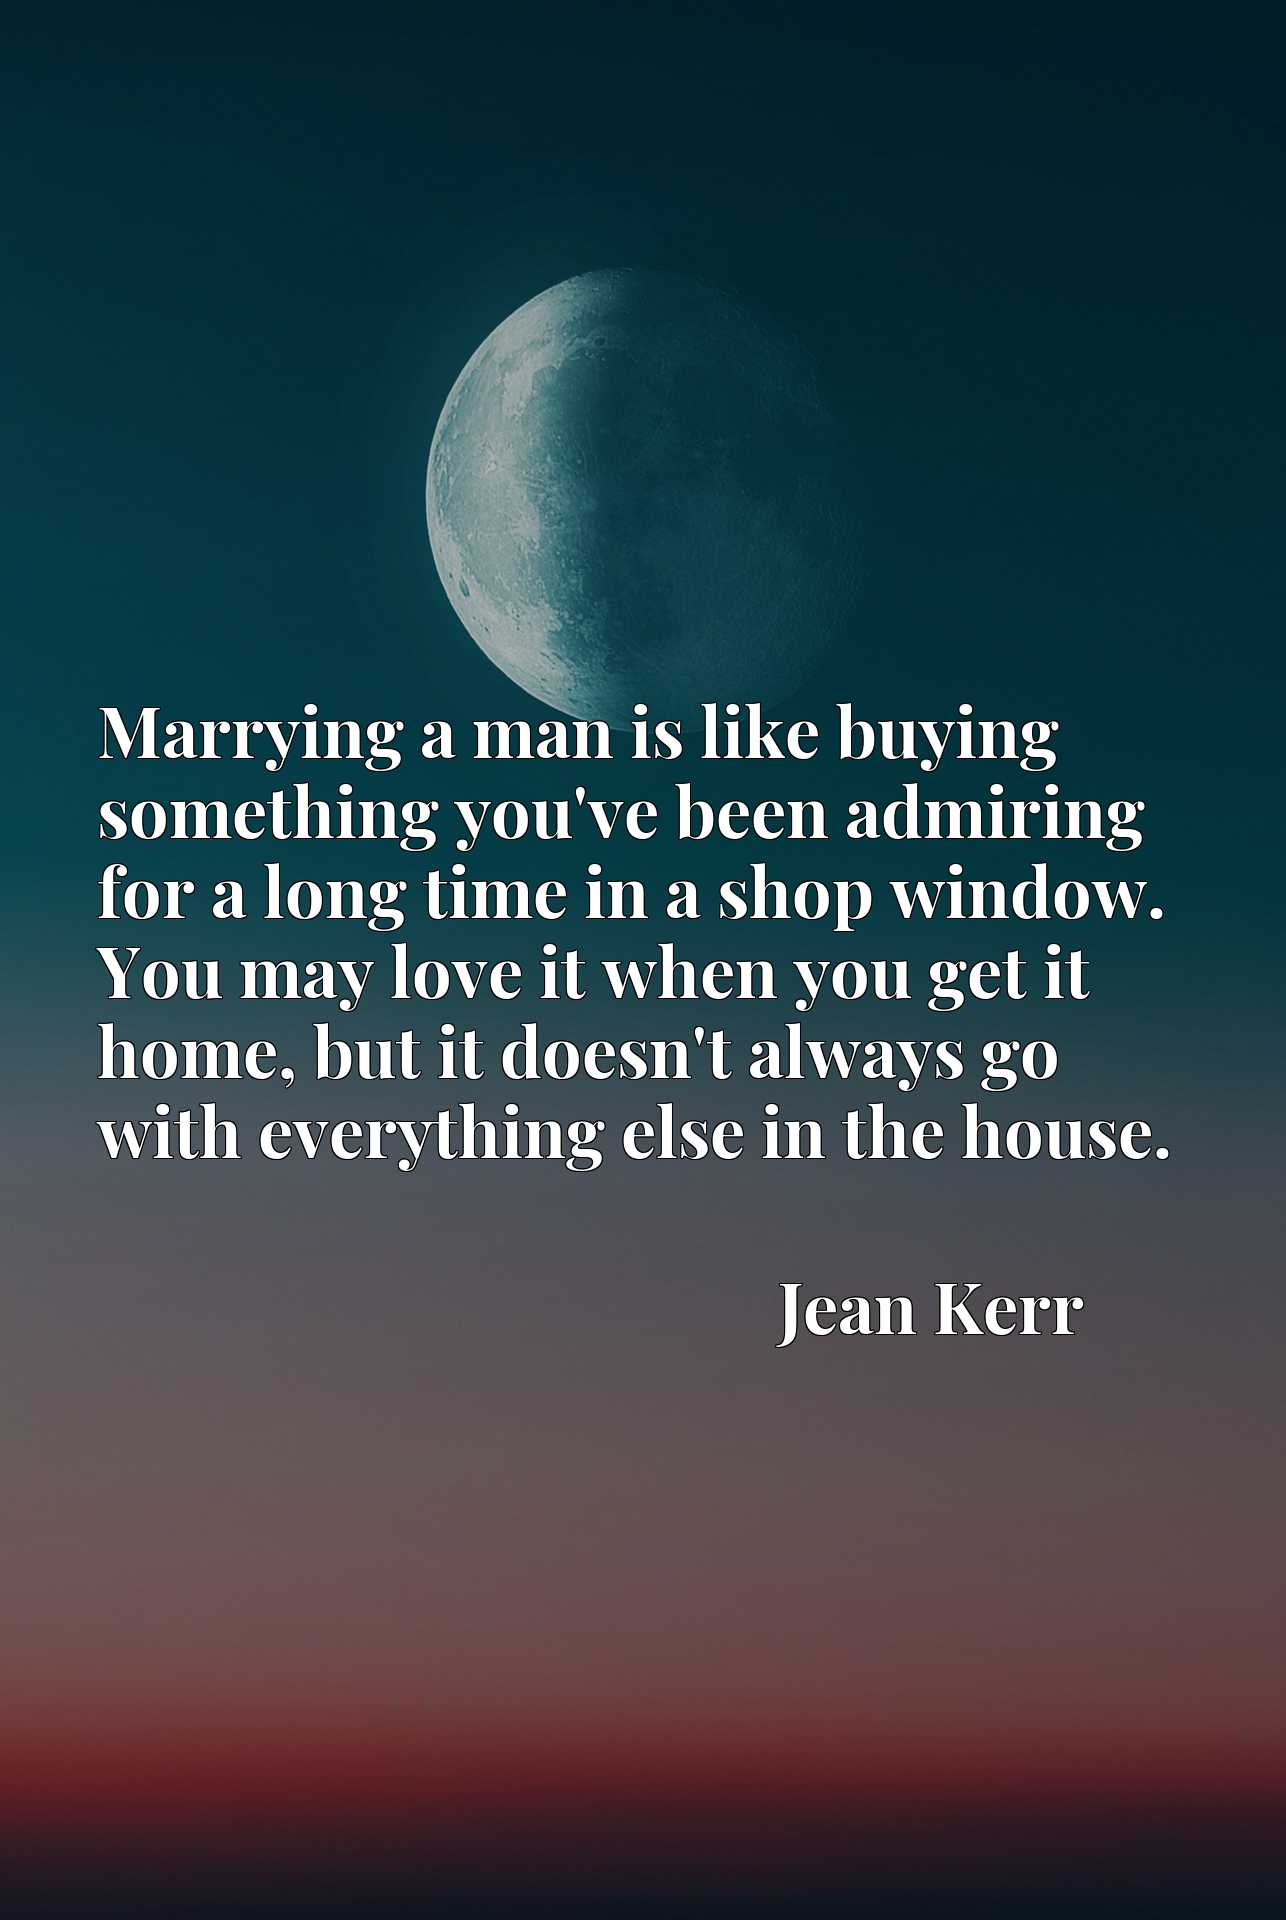 Marrying a man is like buying something you've been admiring for a long time in a shop window. You may love it when you get it home, but it doesn't always go with everything else in the house.